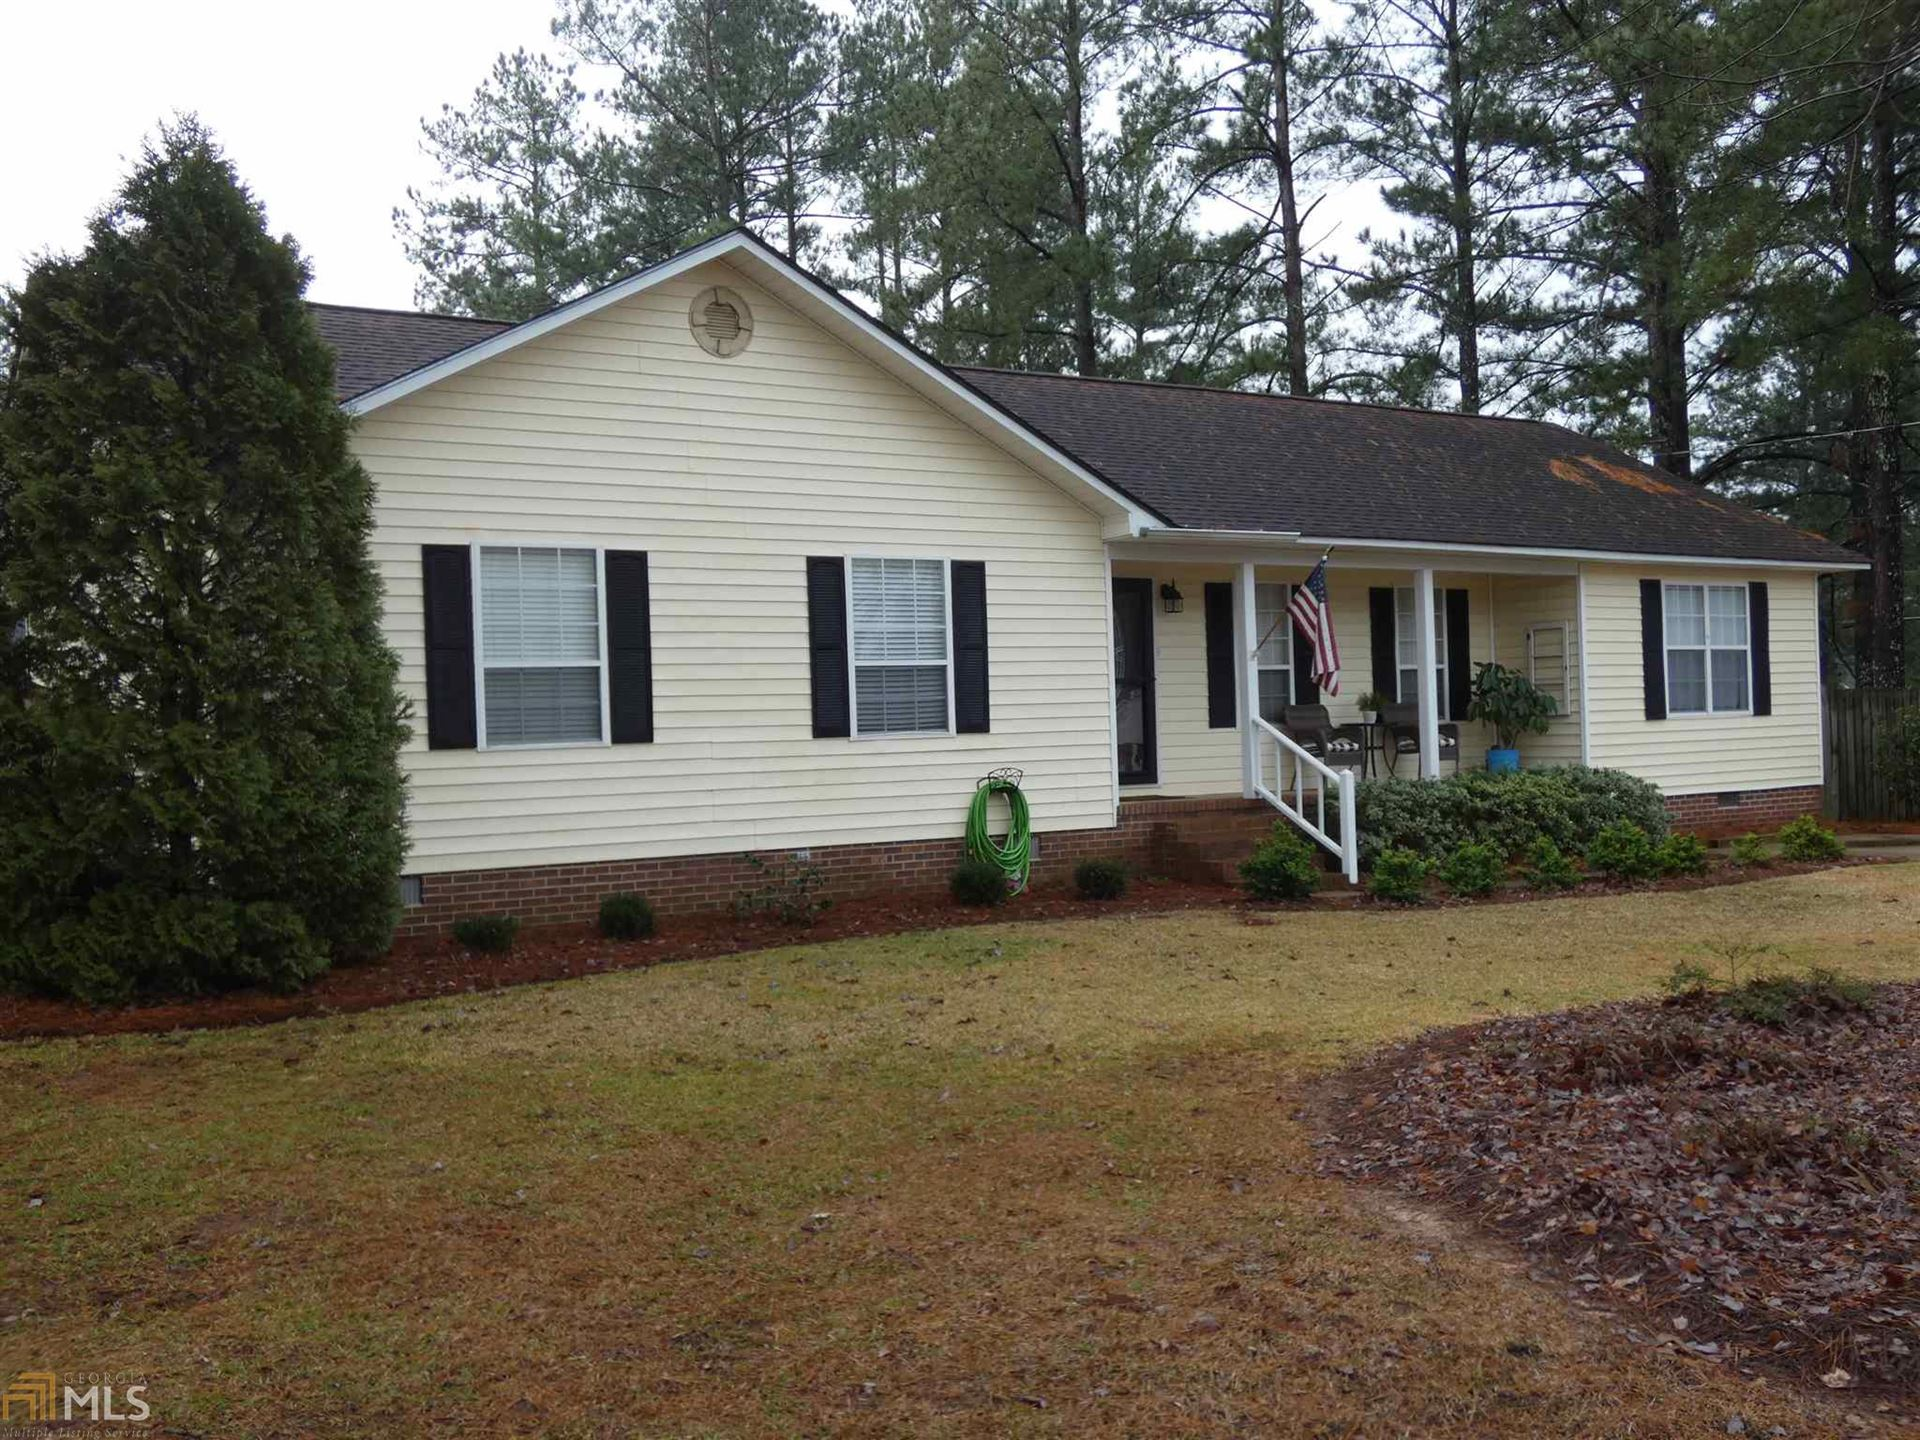 Photo of 751 Mcintyre St, Sandersville, GA 31082 (MLS # 8720184)